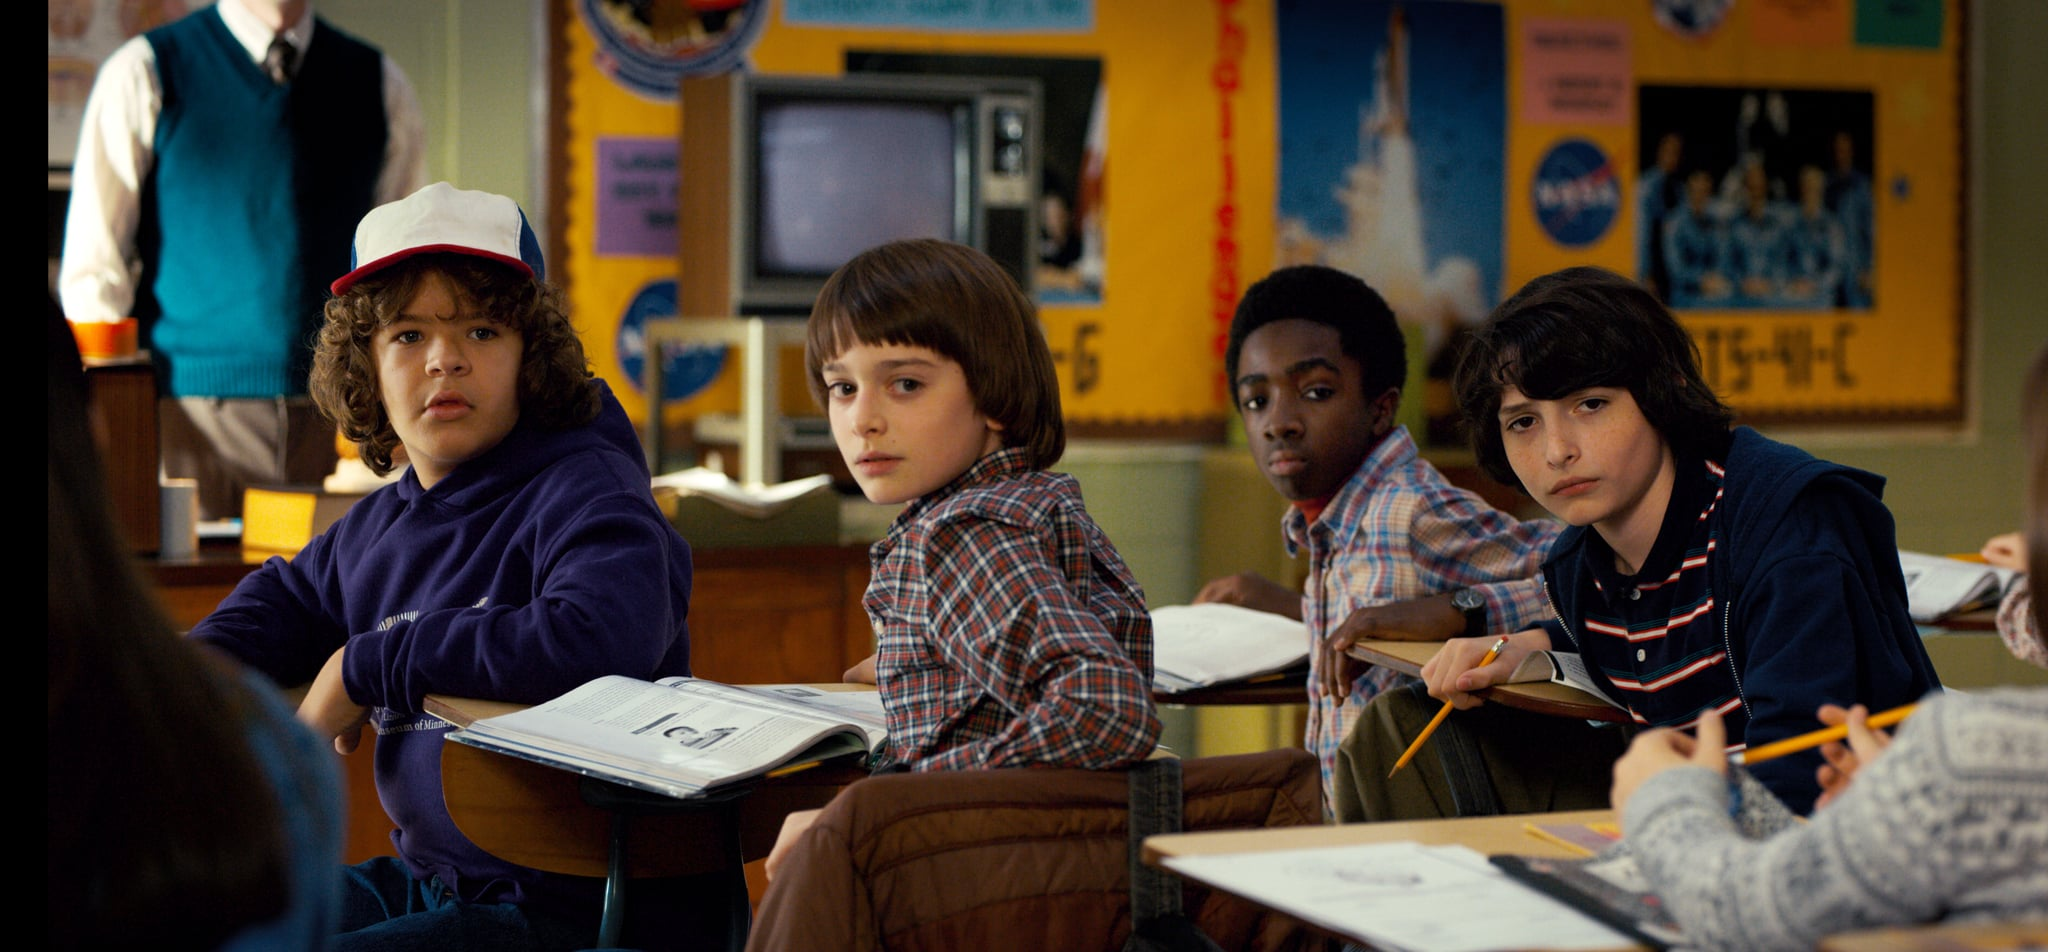 STRANGER THINGS, l-r: Gaten Matarazzo, Noah Schnapp, Caleb McLaughlin, Finn Wolfhard in 'Chapter One: MADMAX' (Season 2, Episode 1, aired October 27, 2017). Netflix/courtesy Everett Collection